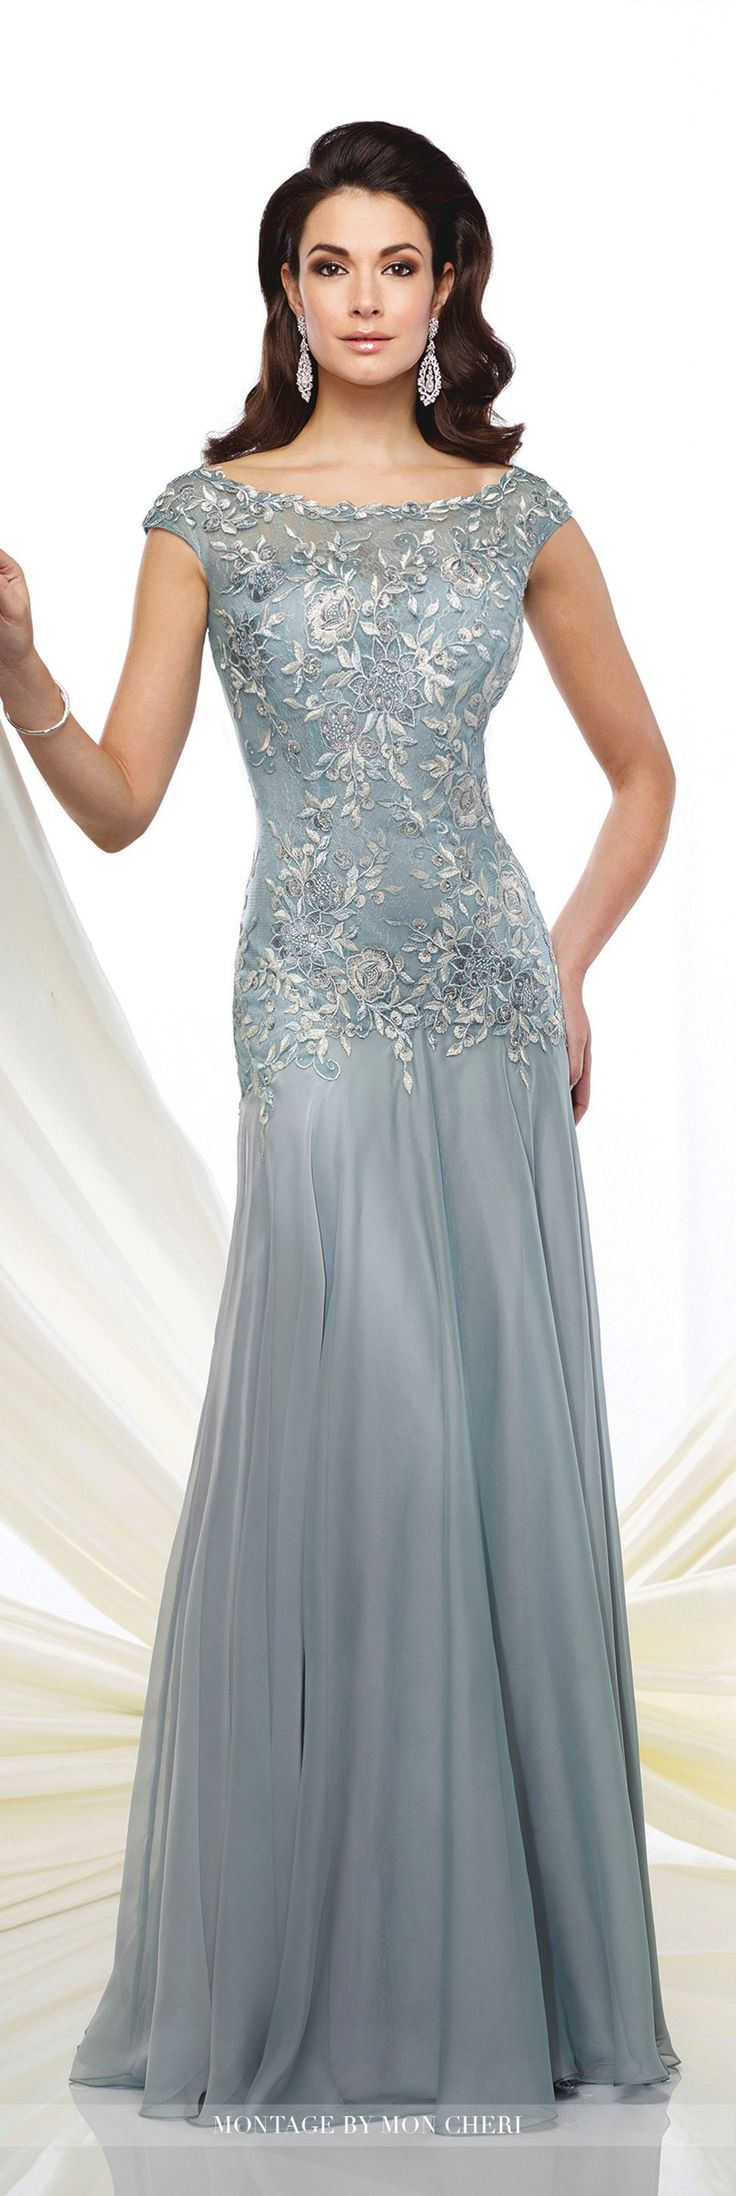 best Dresses images by Amy Dietz on Pinterest Evening gowns